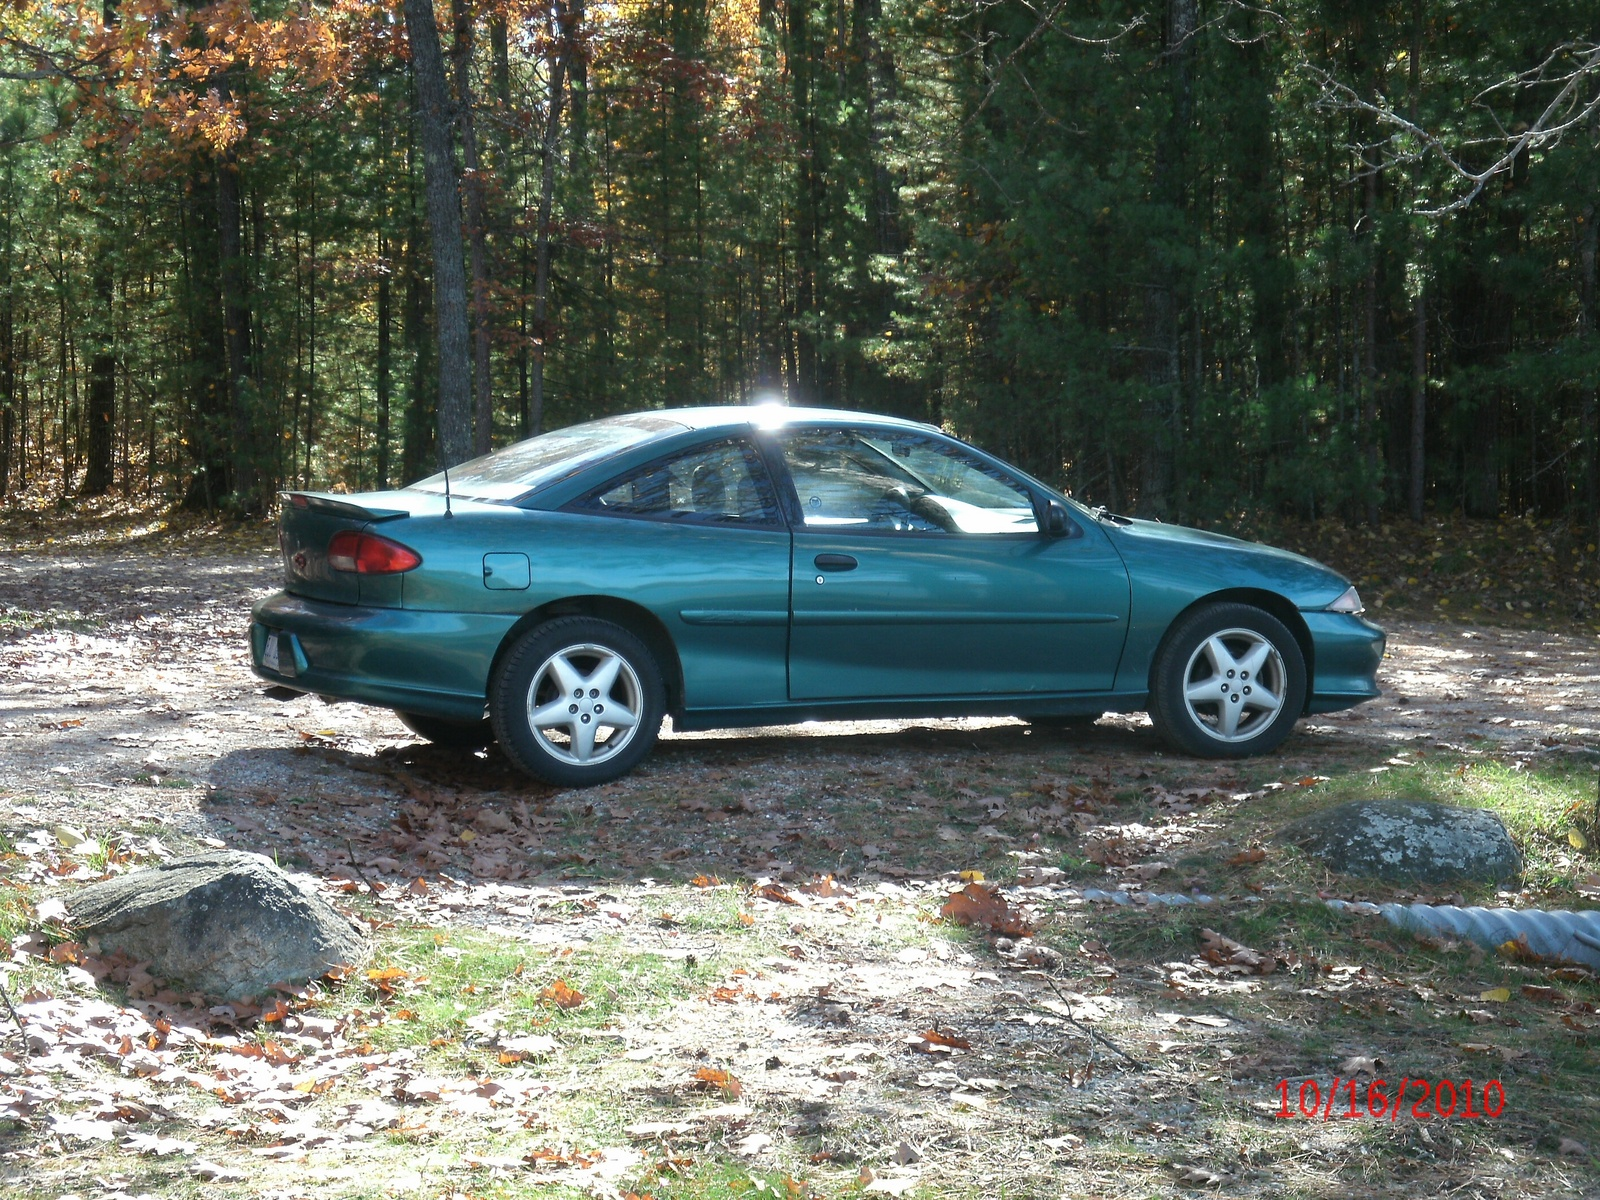 1999 Chevrolet Cavalier 2 Dr Z24 Coupe 24L 5 Speed